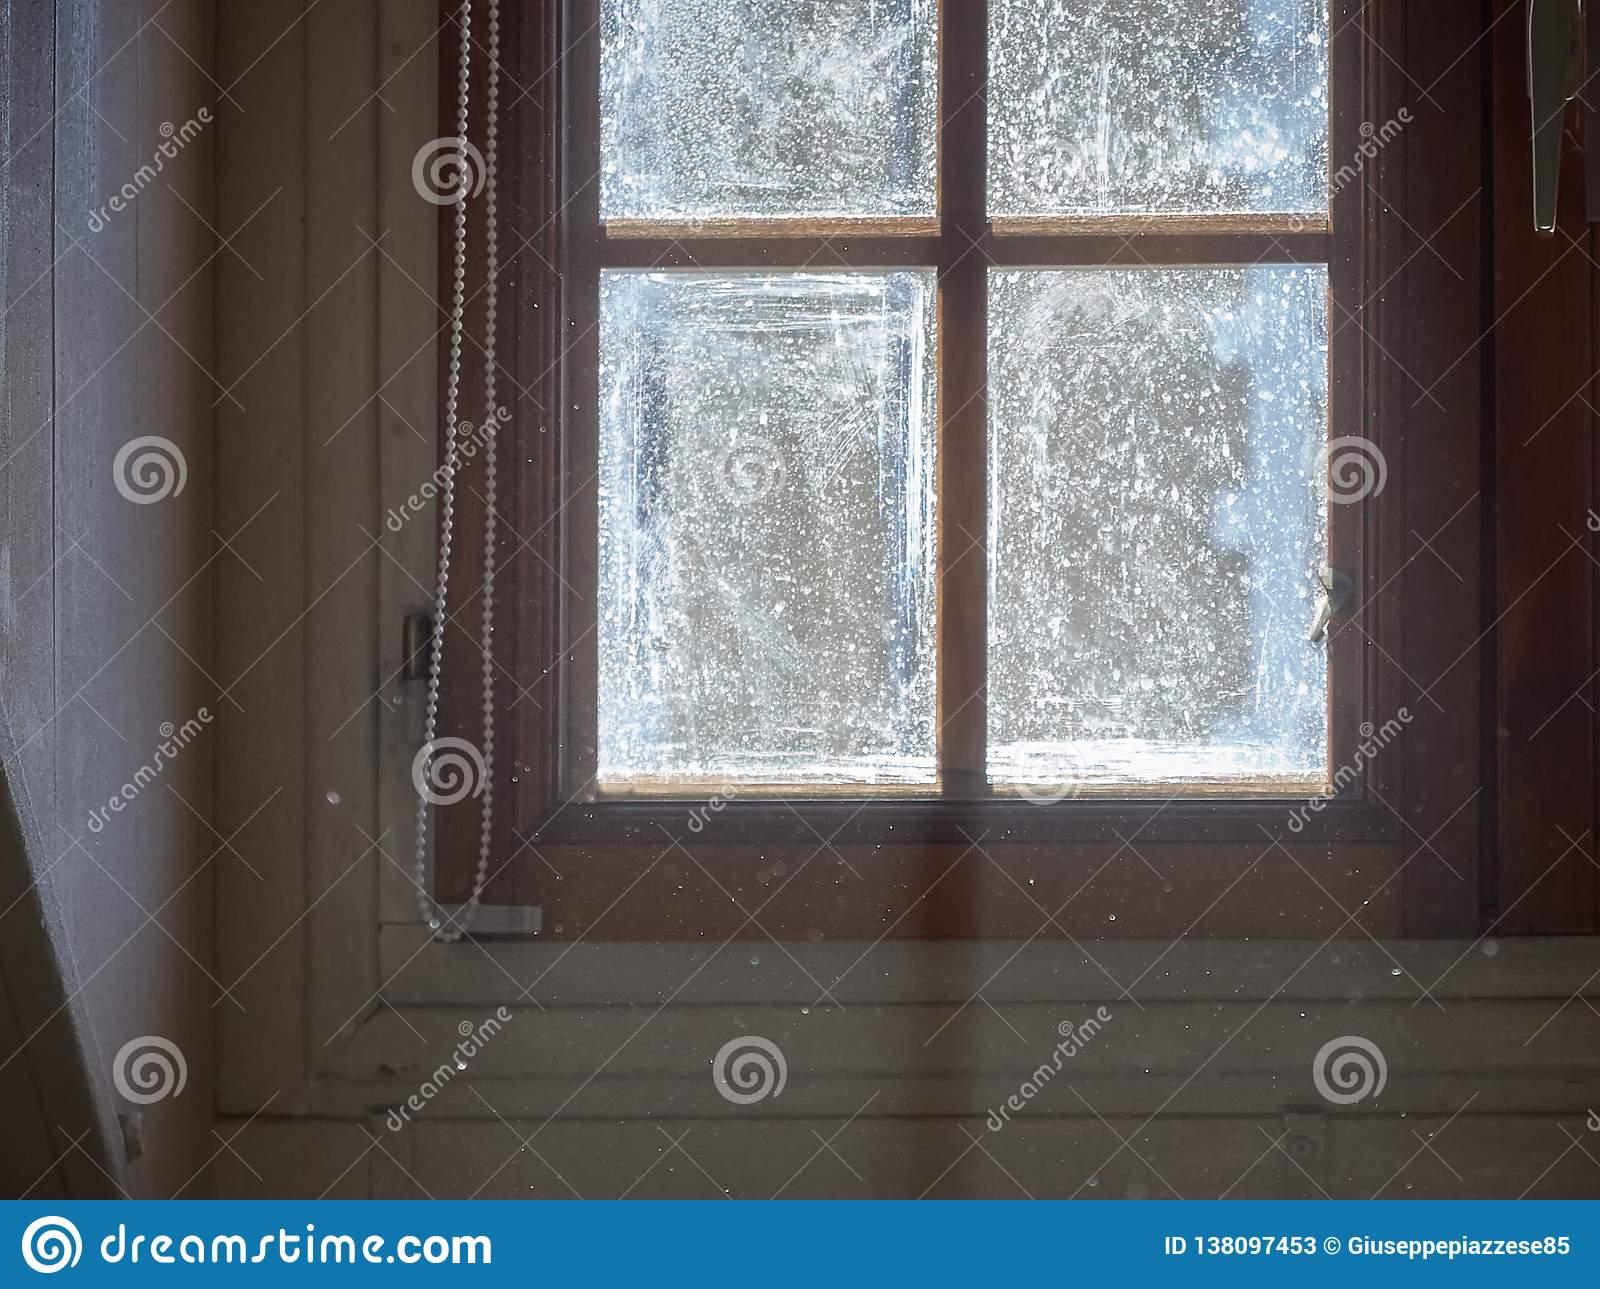 Shot of a window with light coming in